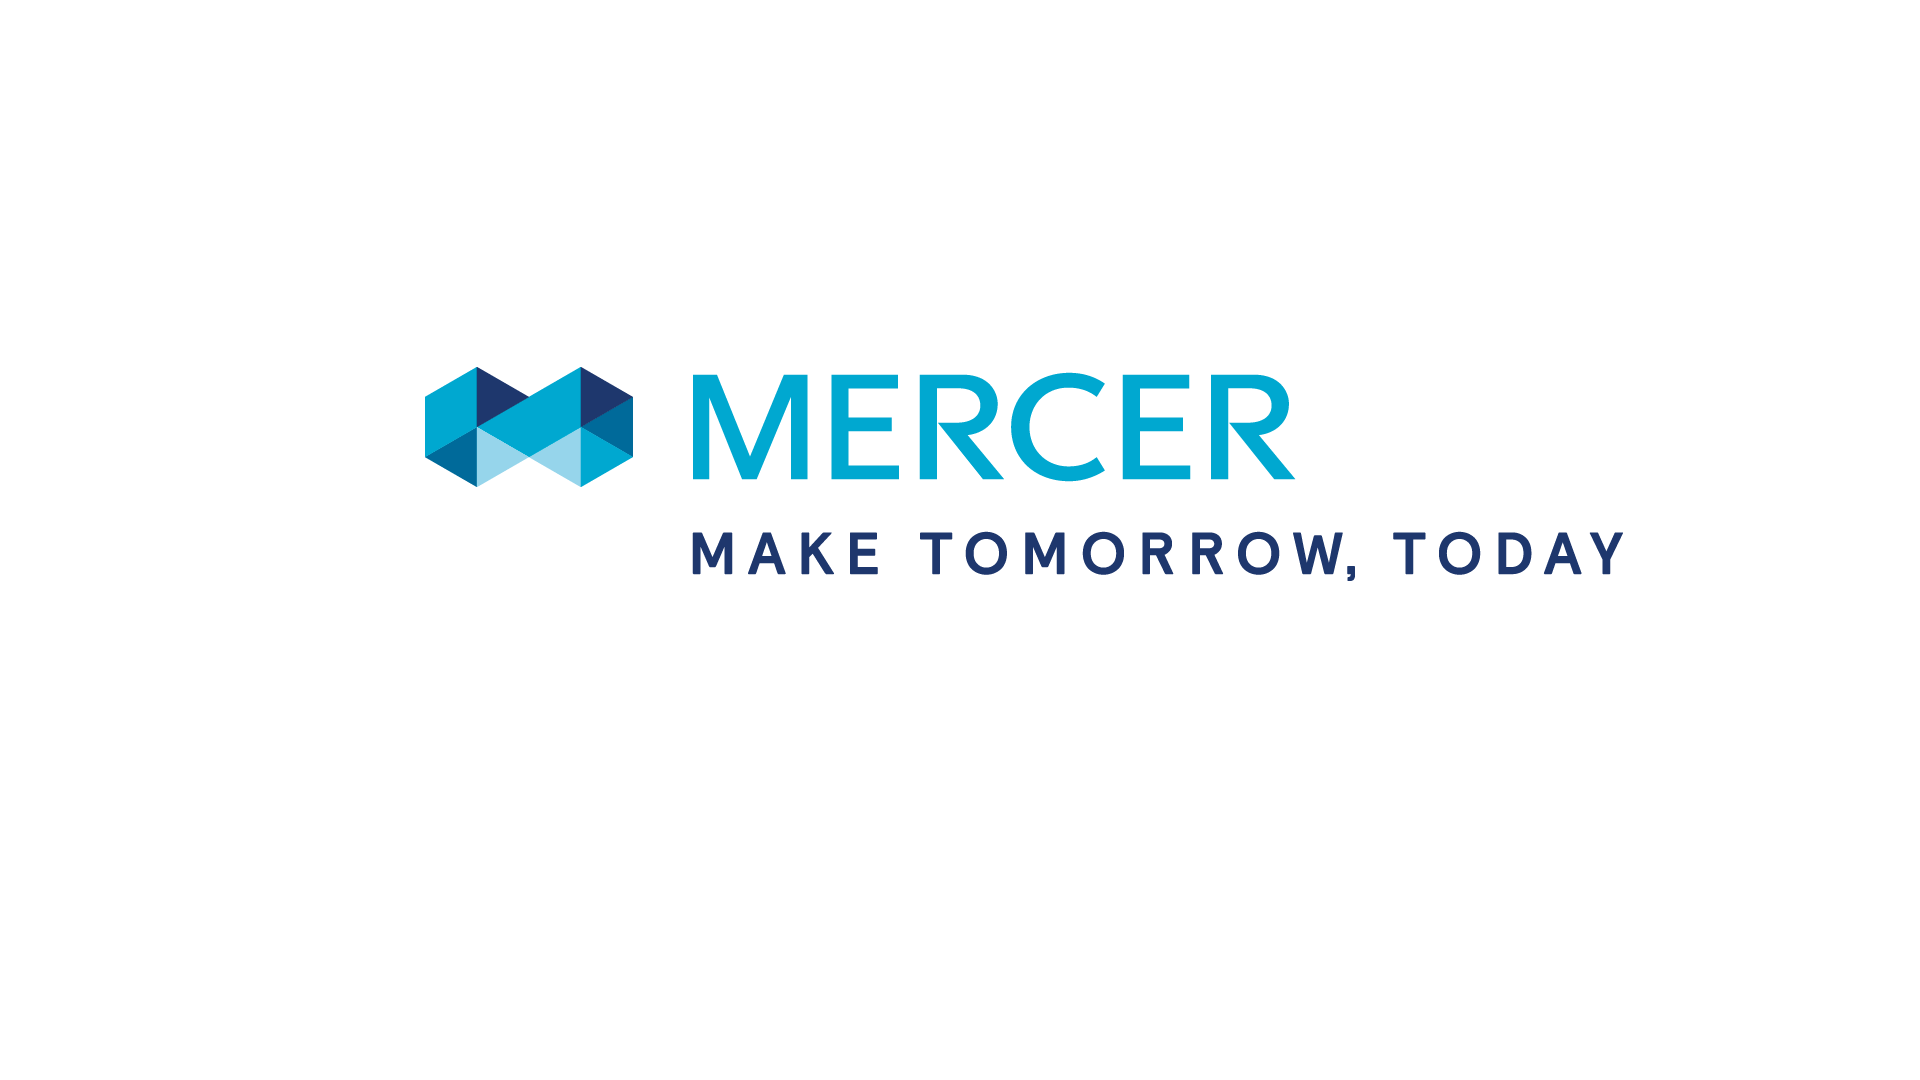 Mercer: When Women Thrive